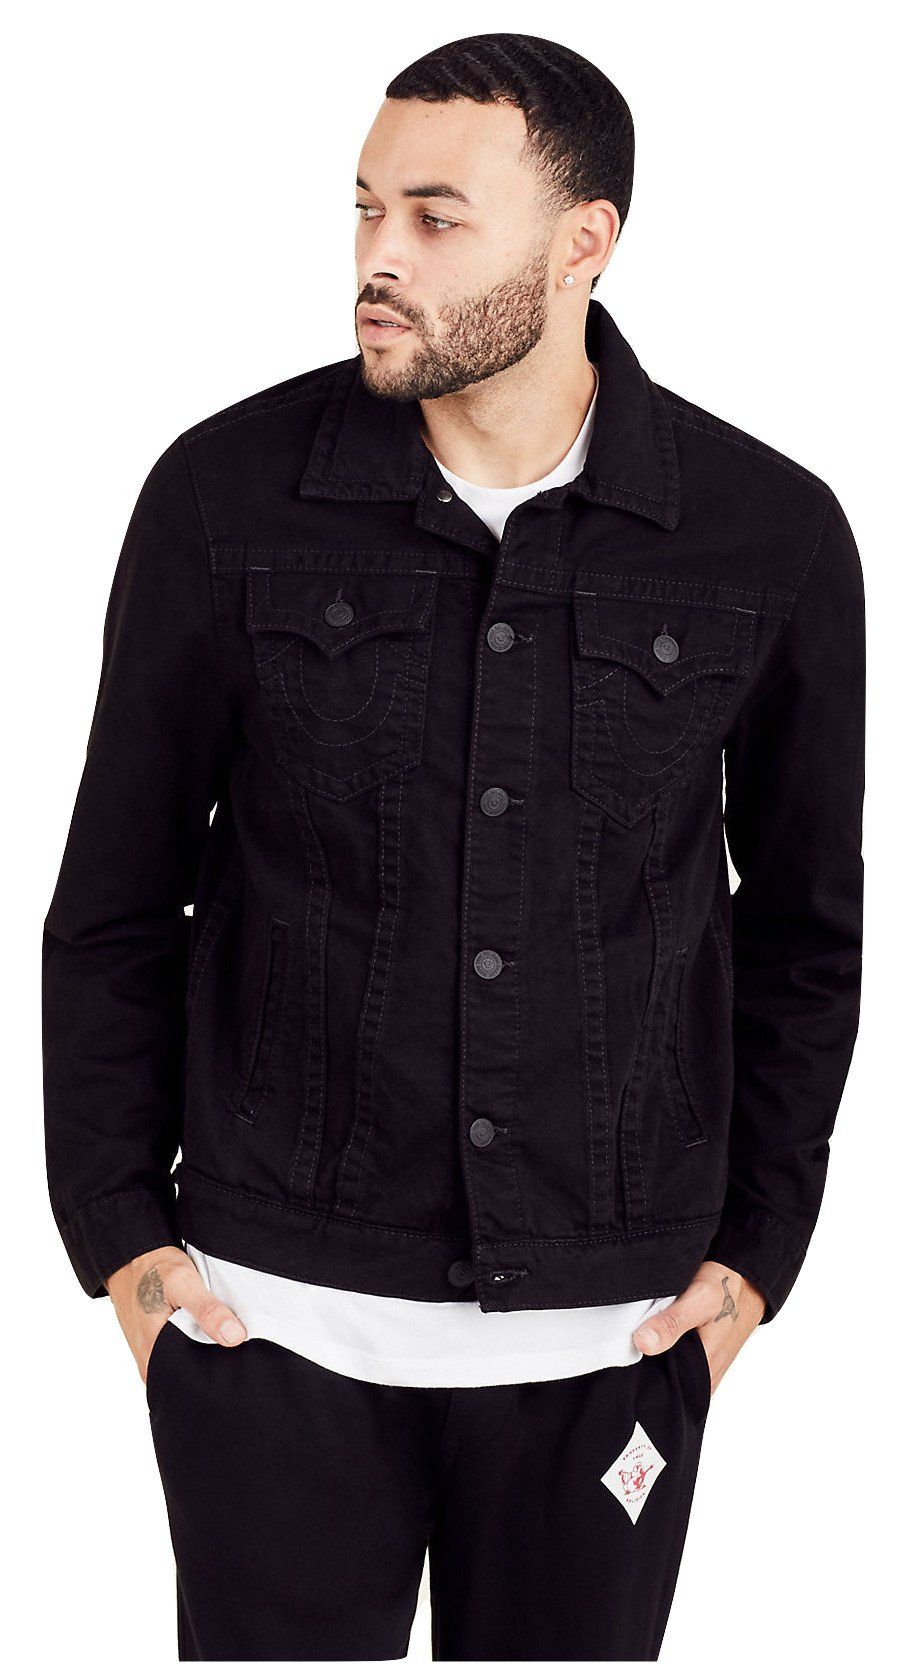 True Religion Men's Trucker Jacket in Jet Black (Small) by True Religion